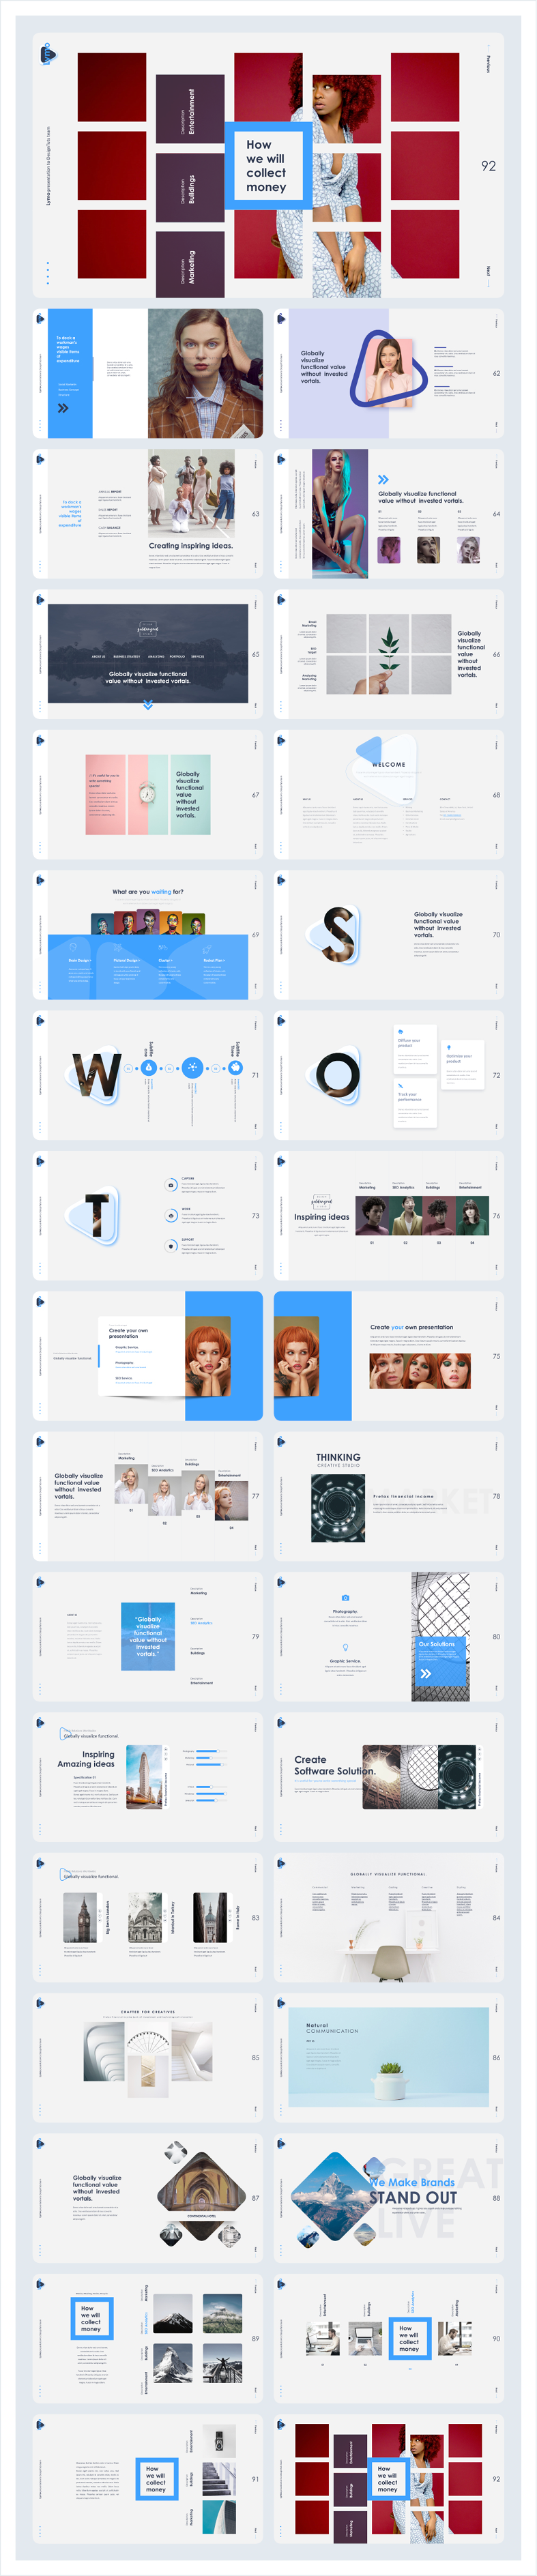 Lymo Powerpoint Presentation Template - 15